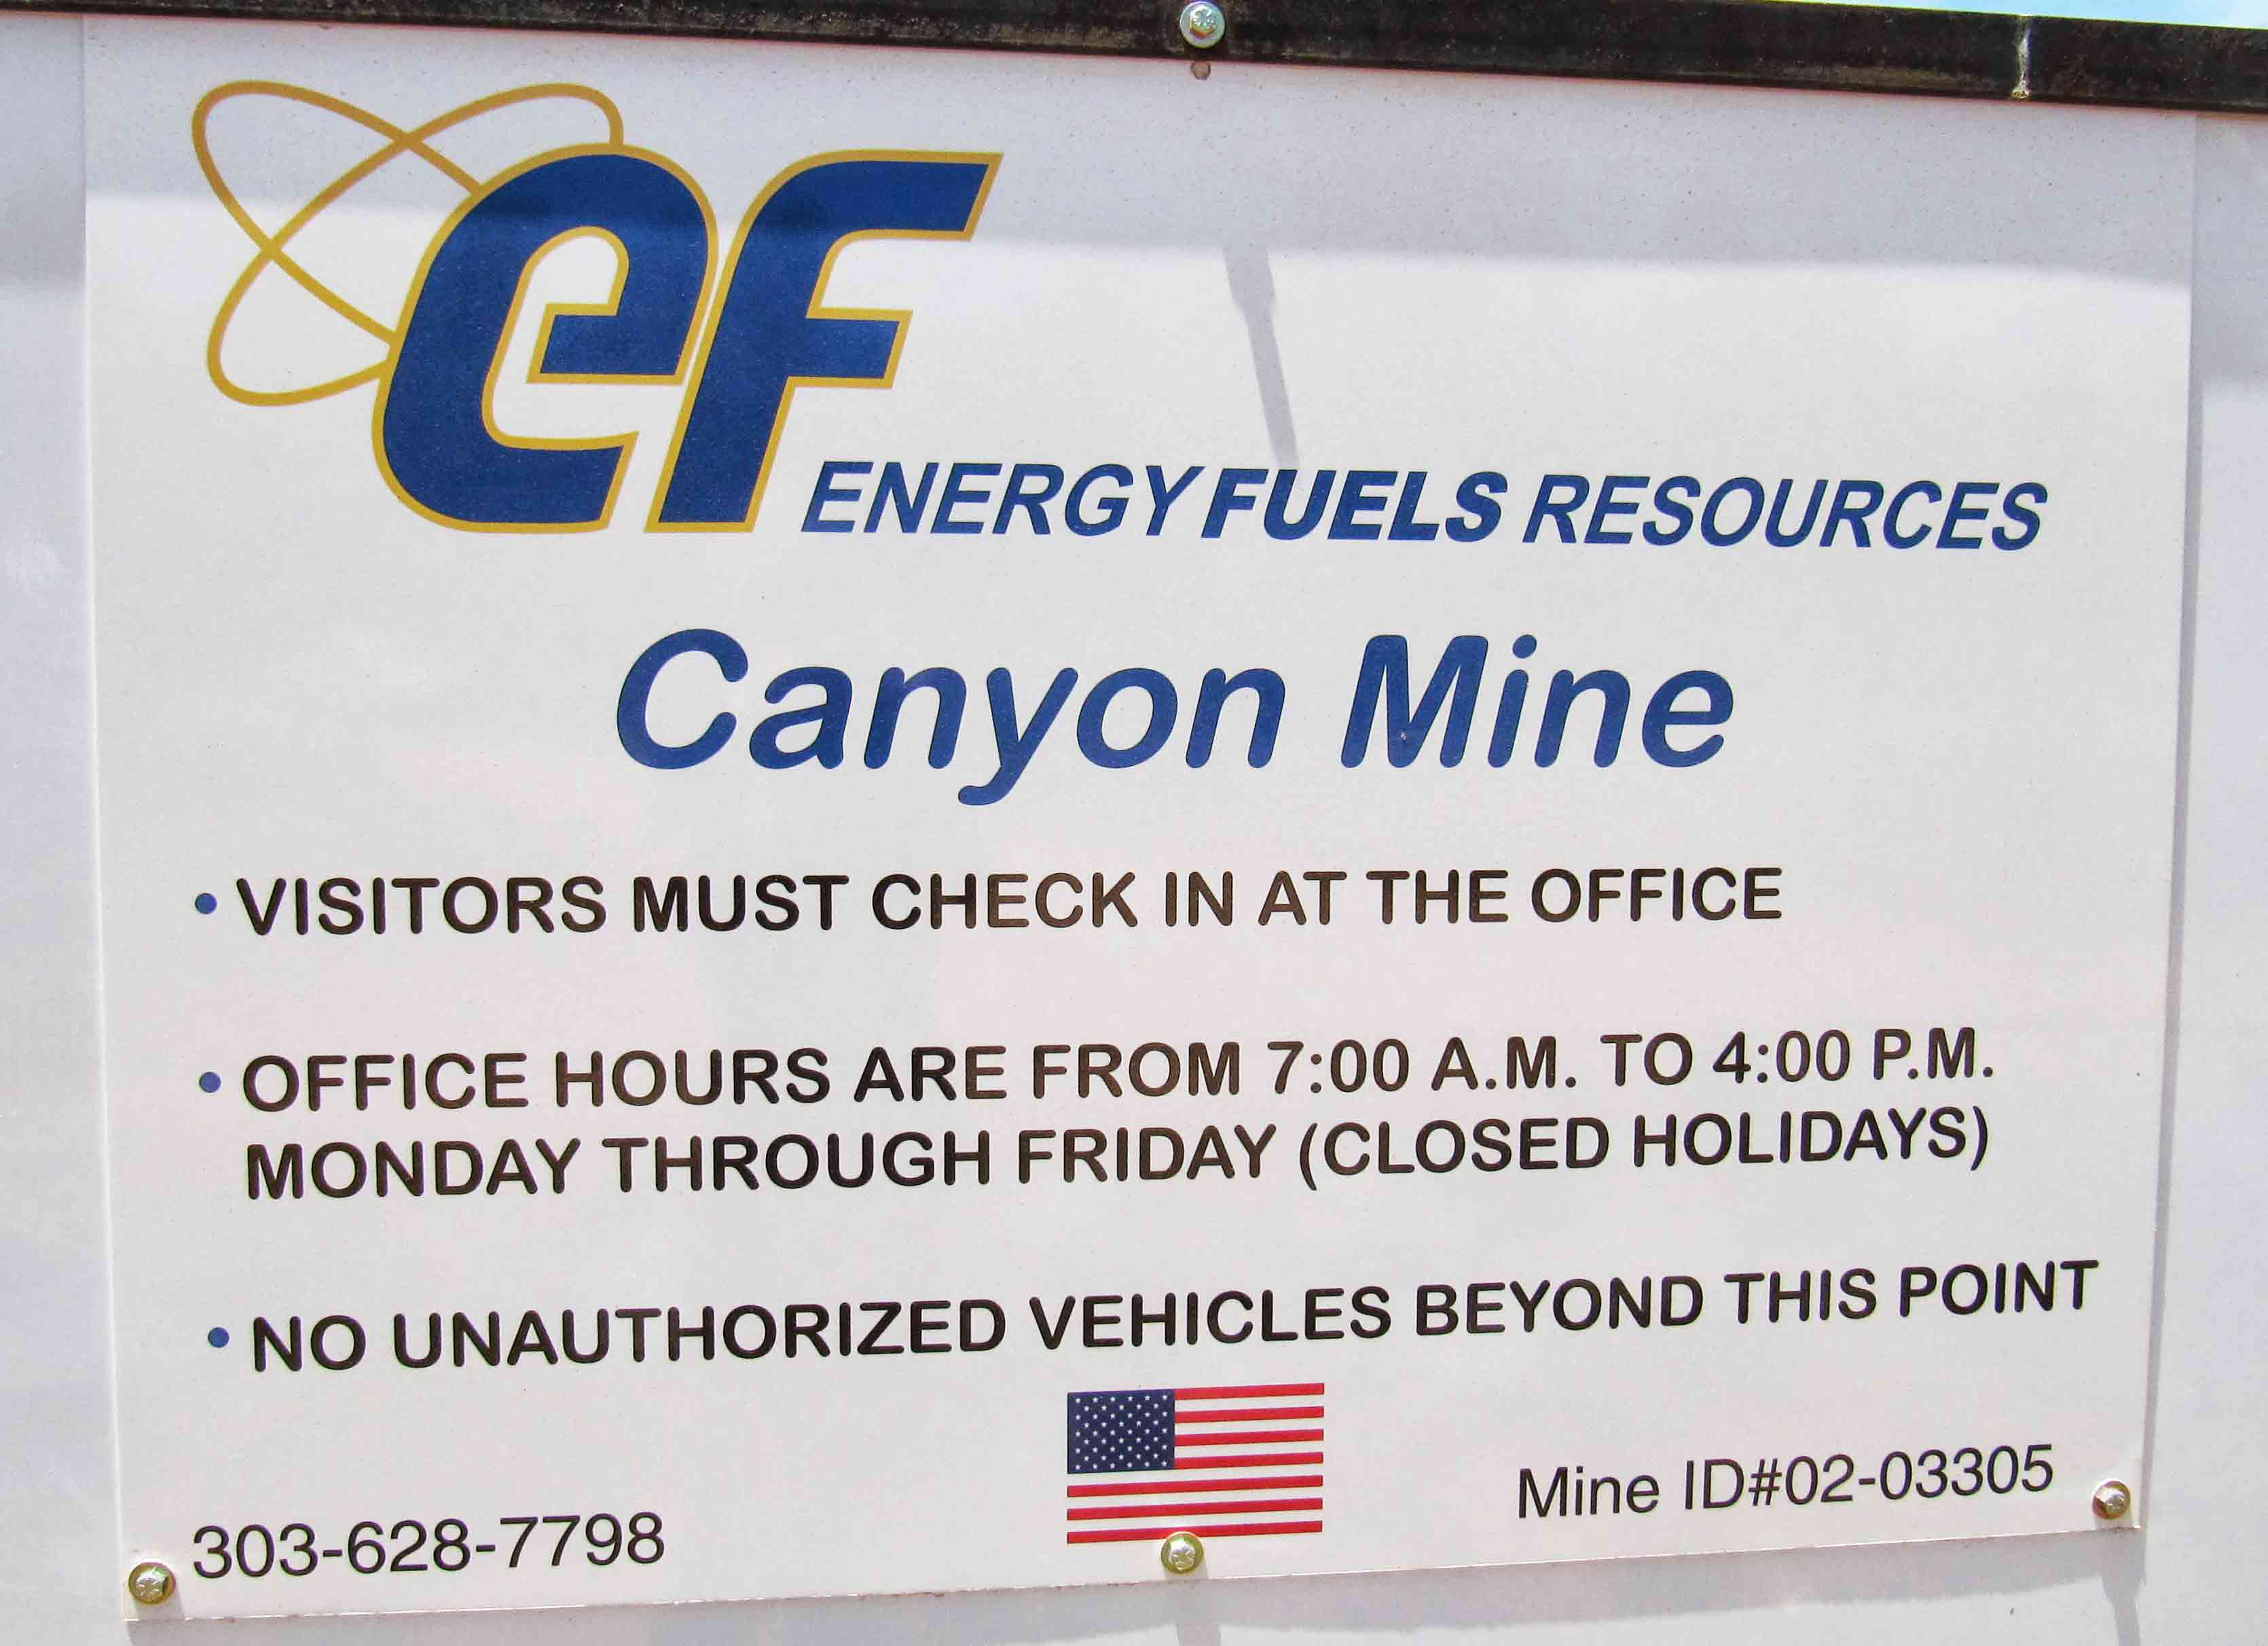 The Energy Fuels Resources sign at the front gate of Canyon Uranium Mine.